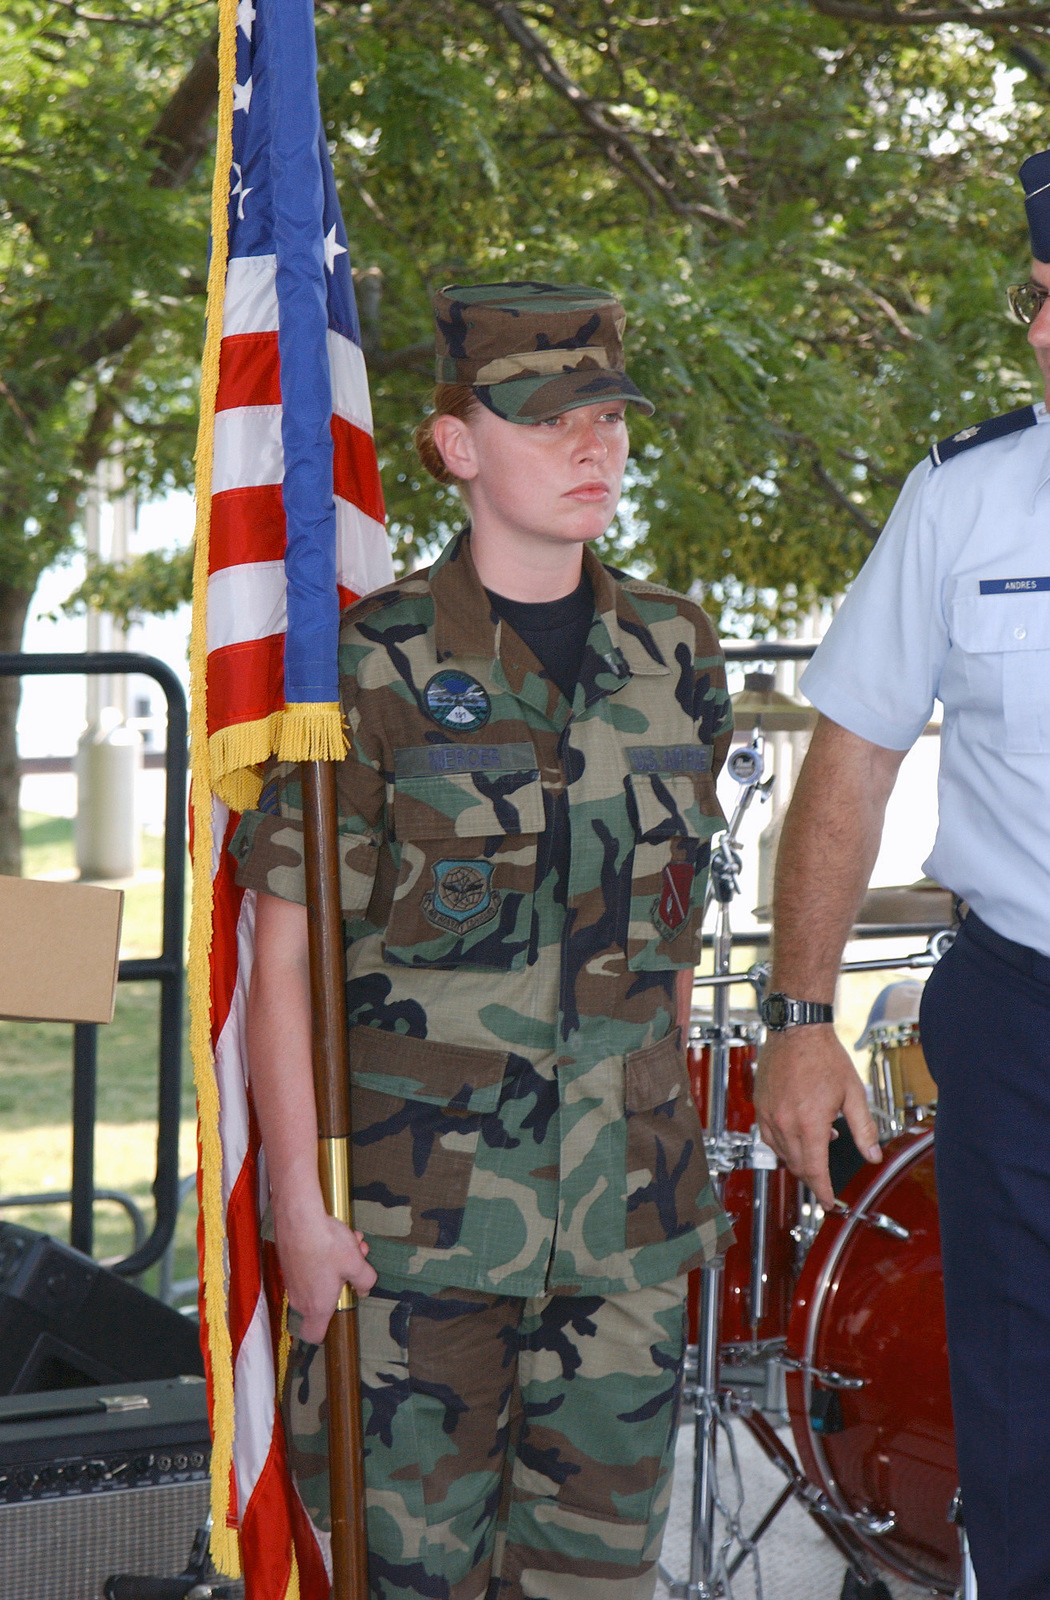 US Air Force (USAF) STAFF Sergeant (SSGT) Melissa Mercer, (left) an Electrician assigned to the 191st Maintenance Squadron (MXS), performs the duties of the Color Sergeant during a Swearing in Ceremony being held at Hart Plaza, Detroit, Michigan (MI)